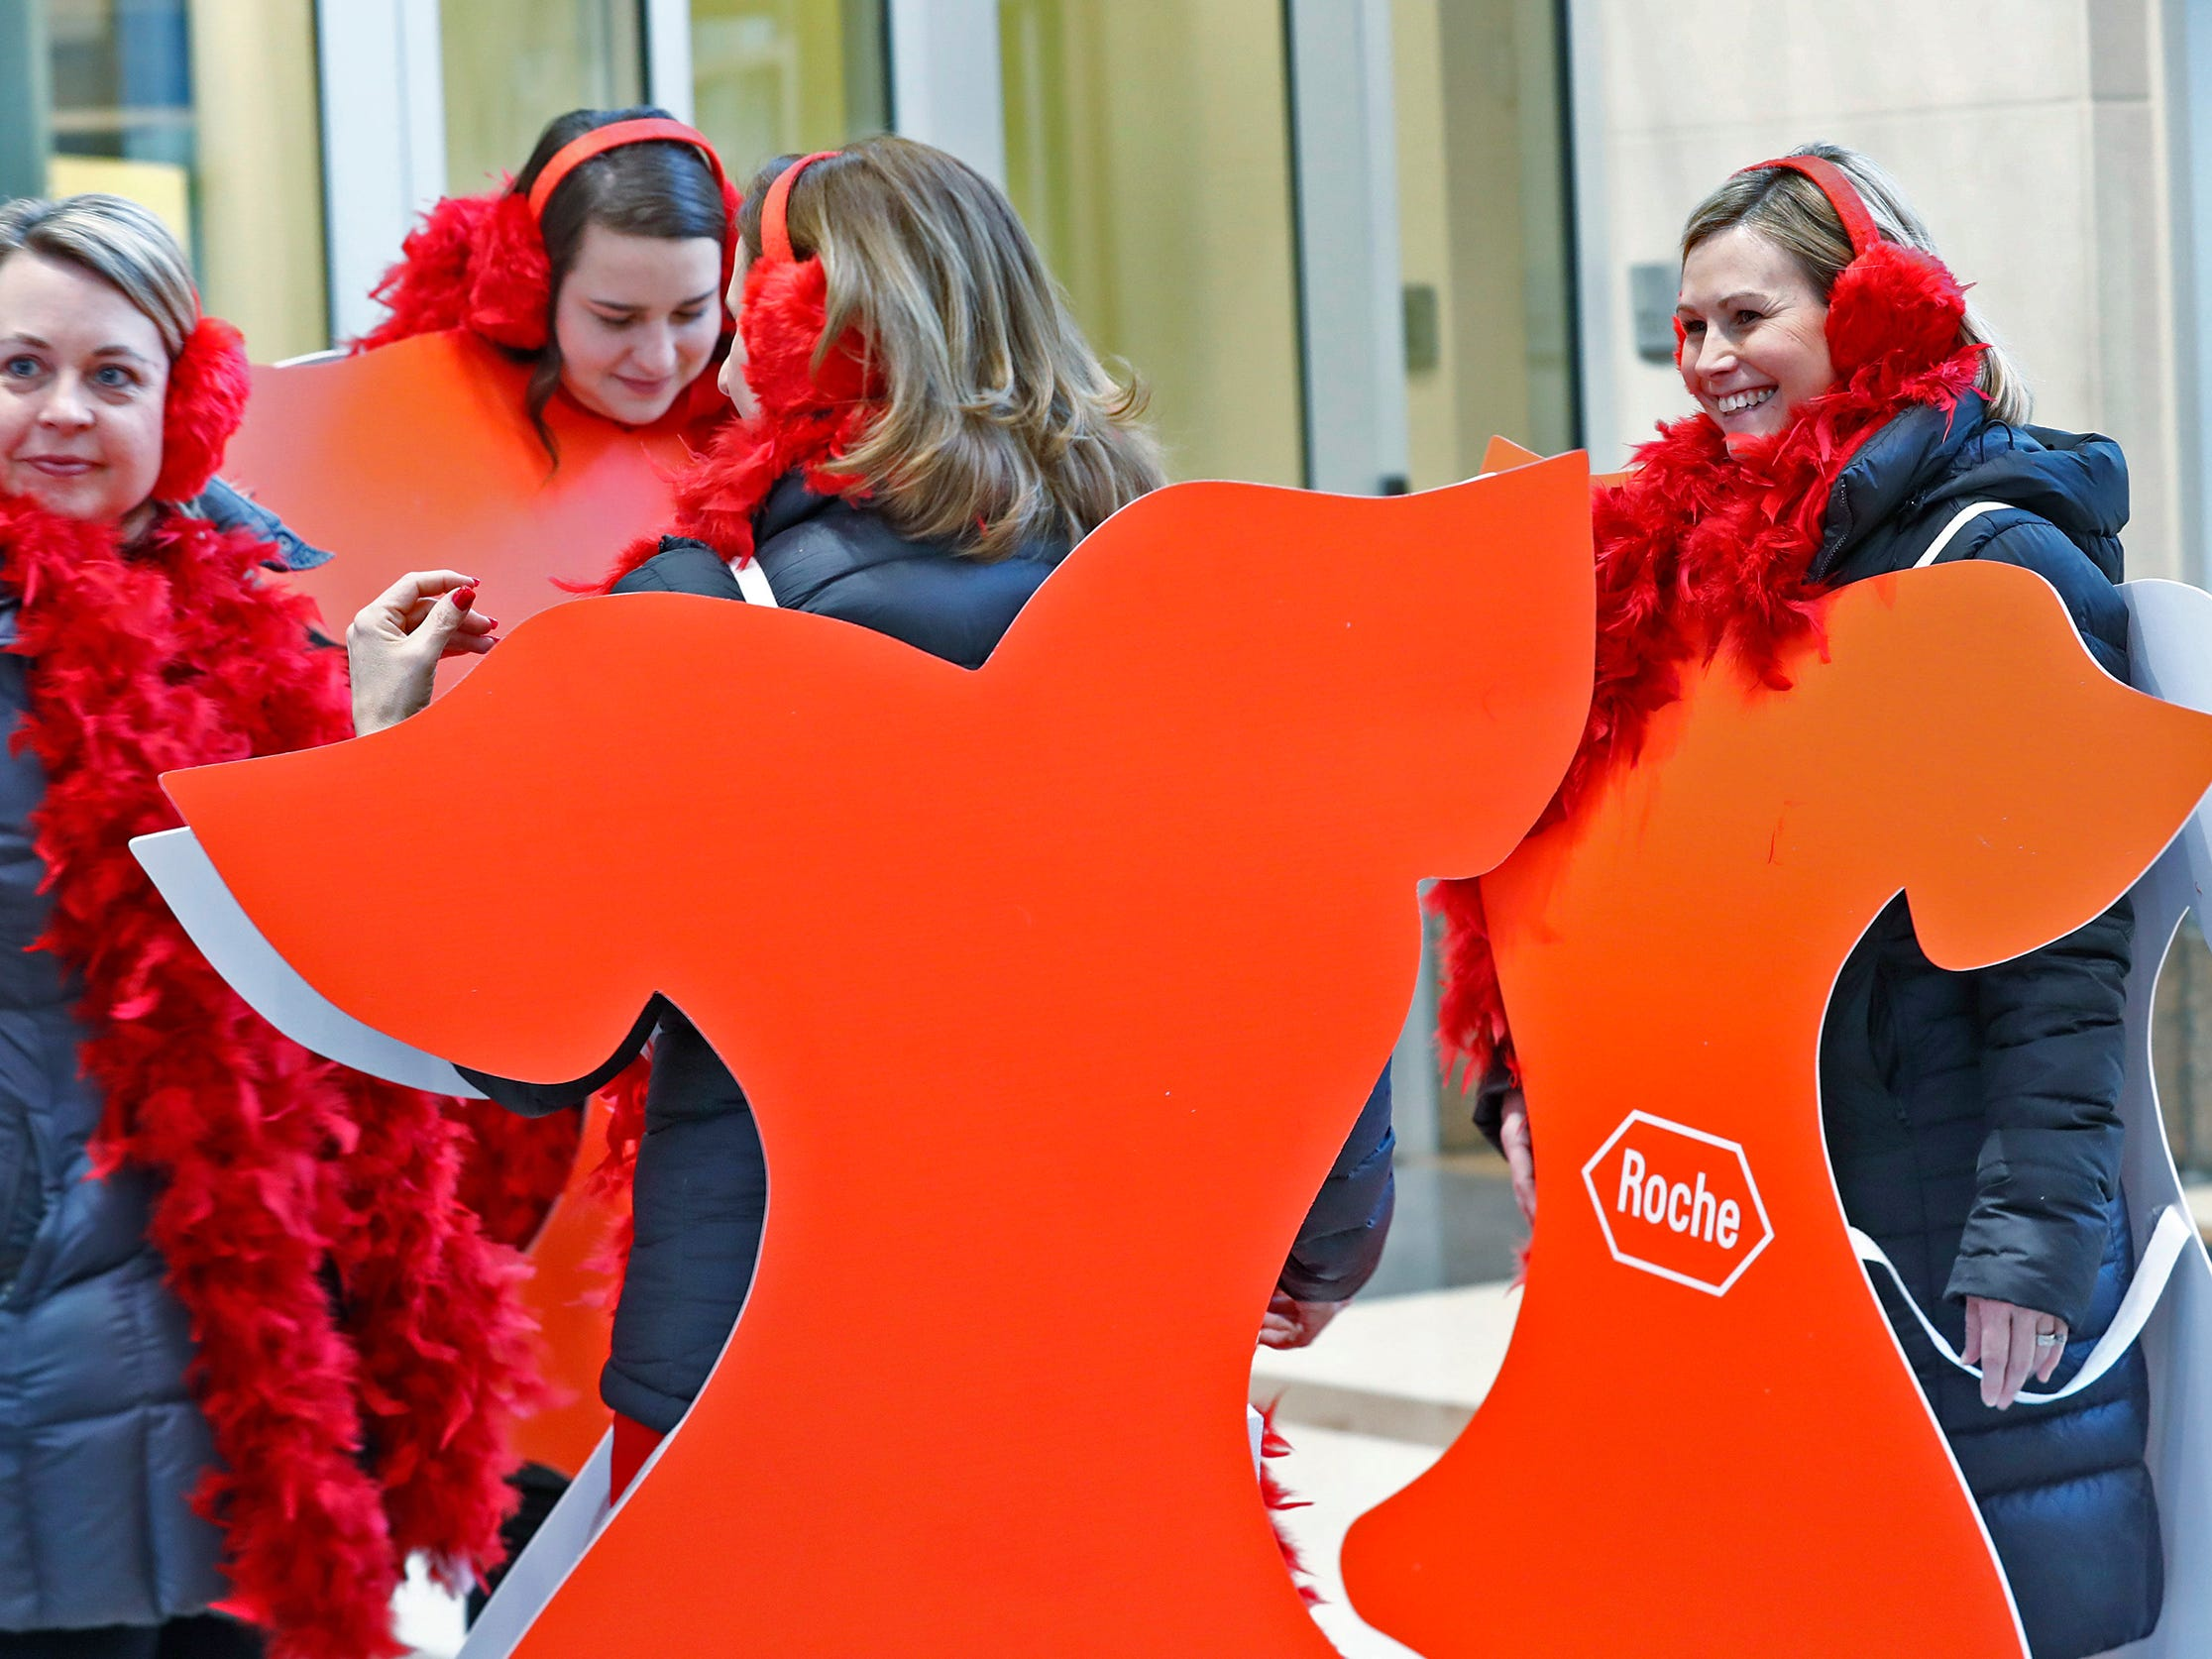 Courtney Sweeney, right, with Roche, laughs with her friends as they wear cut out red dresses before they walk around Monument Circle for the Red Dress Dash, Friday, Feb. 8, 2019.  The American Heart Association put on the seventh annual event to support women's heart health.  The event raises awareness for the American Heart Association's Go Red For Women movement.  Heart disease is the leading cause of death among women.